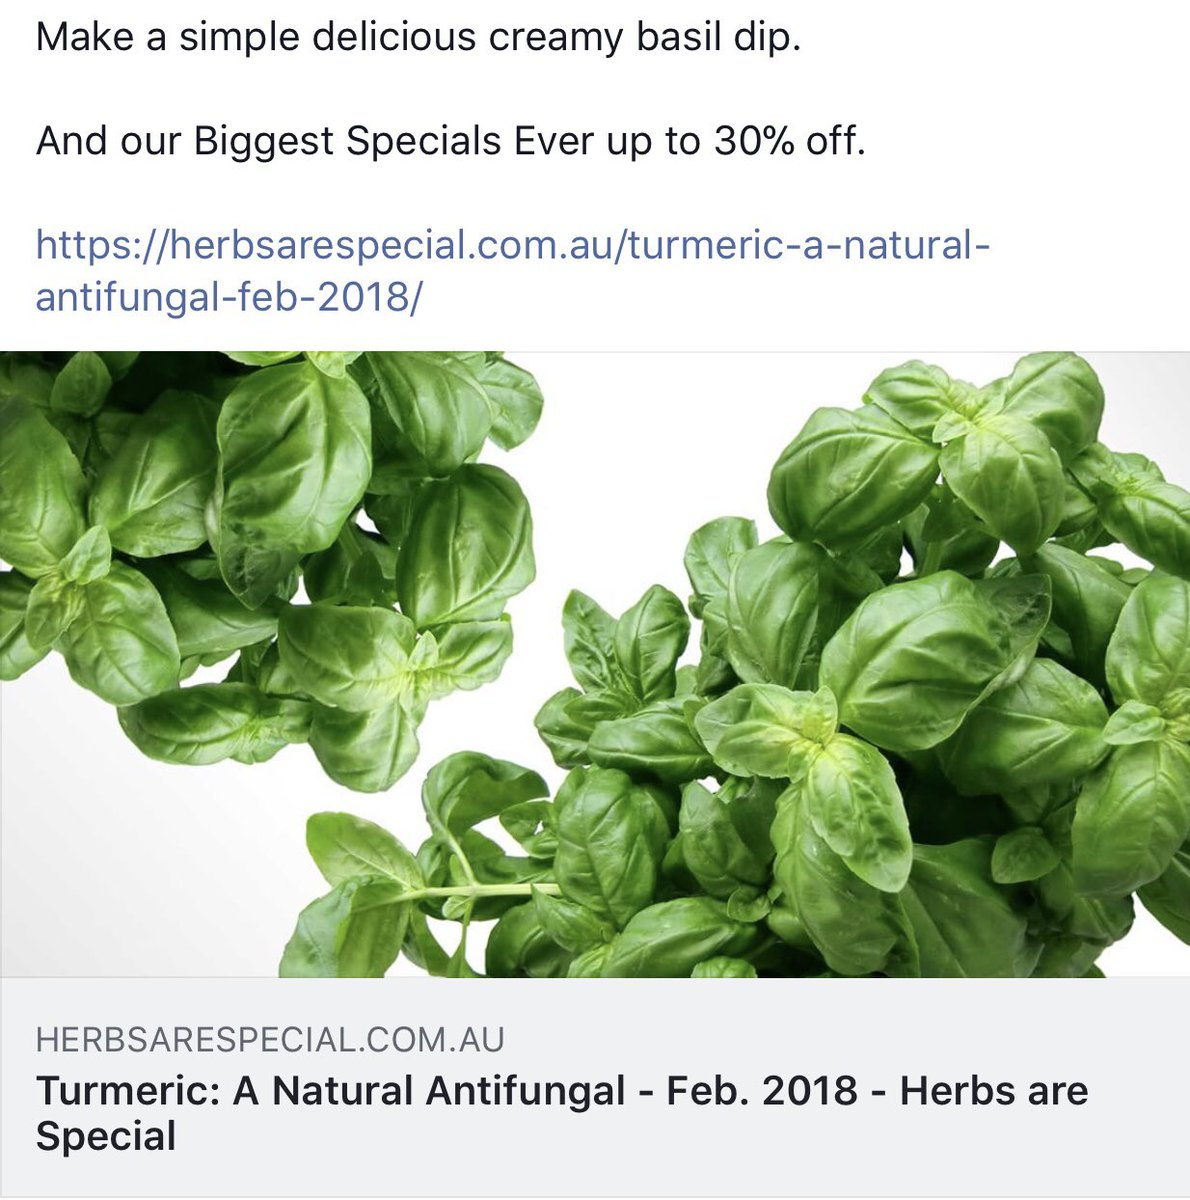 Shipards Herb Farm on Twitter: